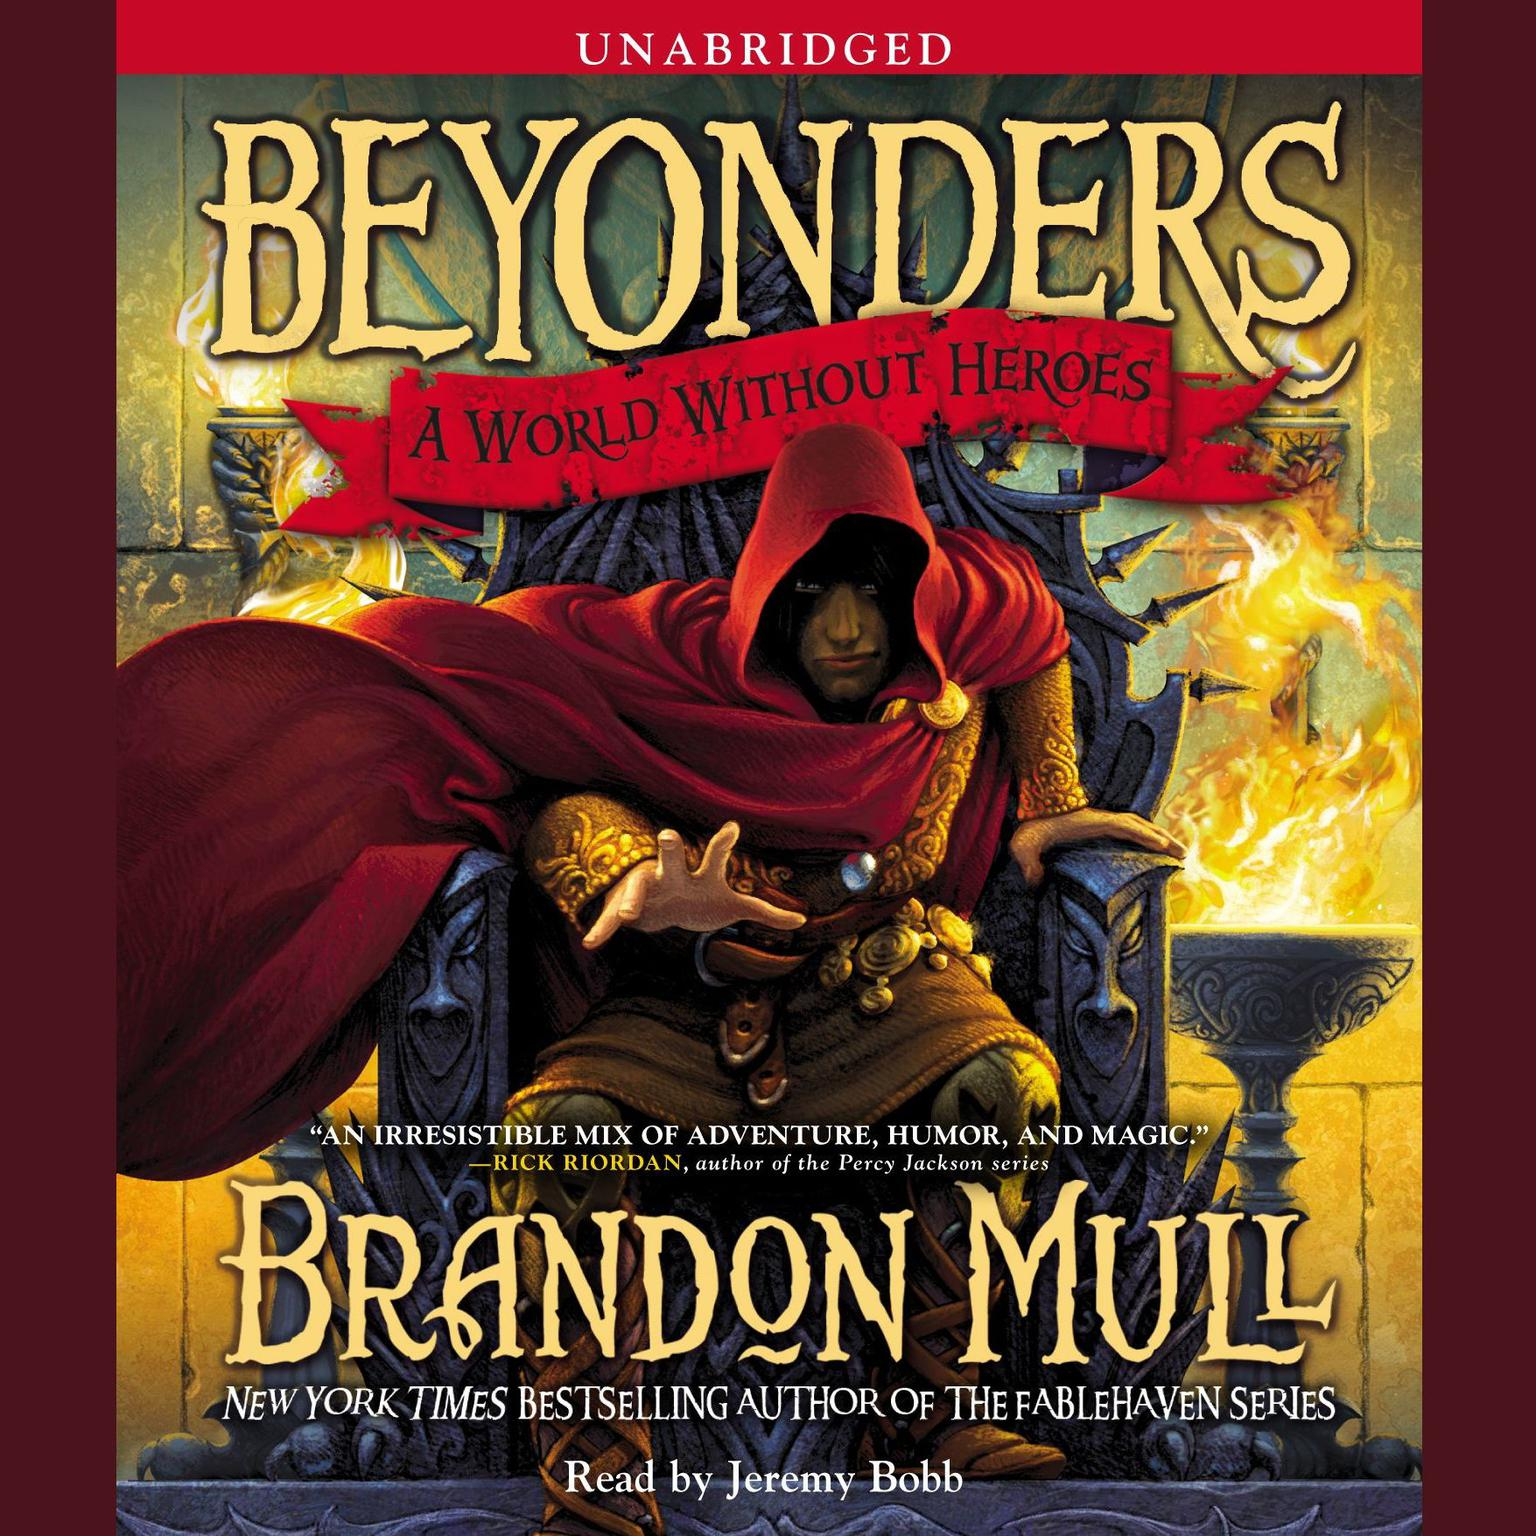 Printable A World Without Heroes: Beyonders, Book 1 Audiobook Cover Art